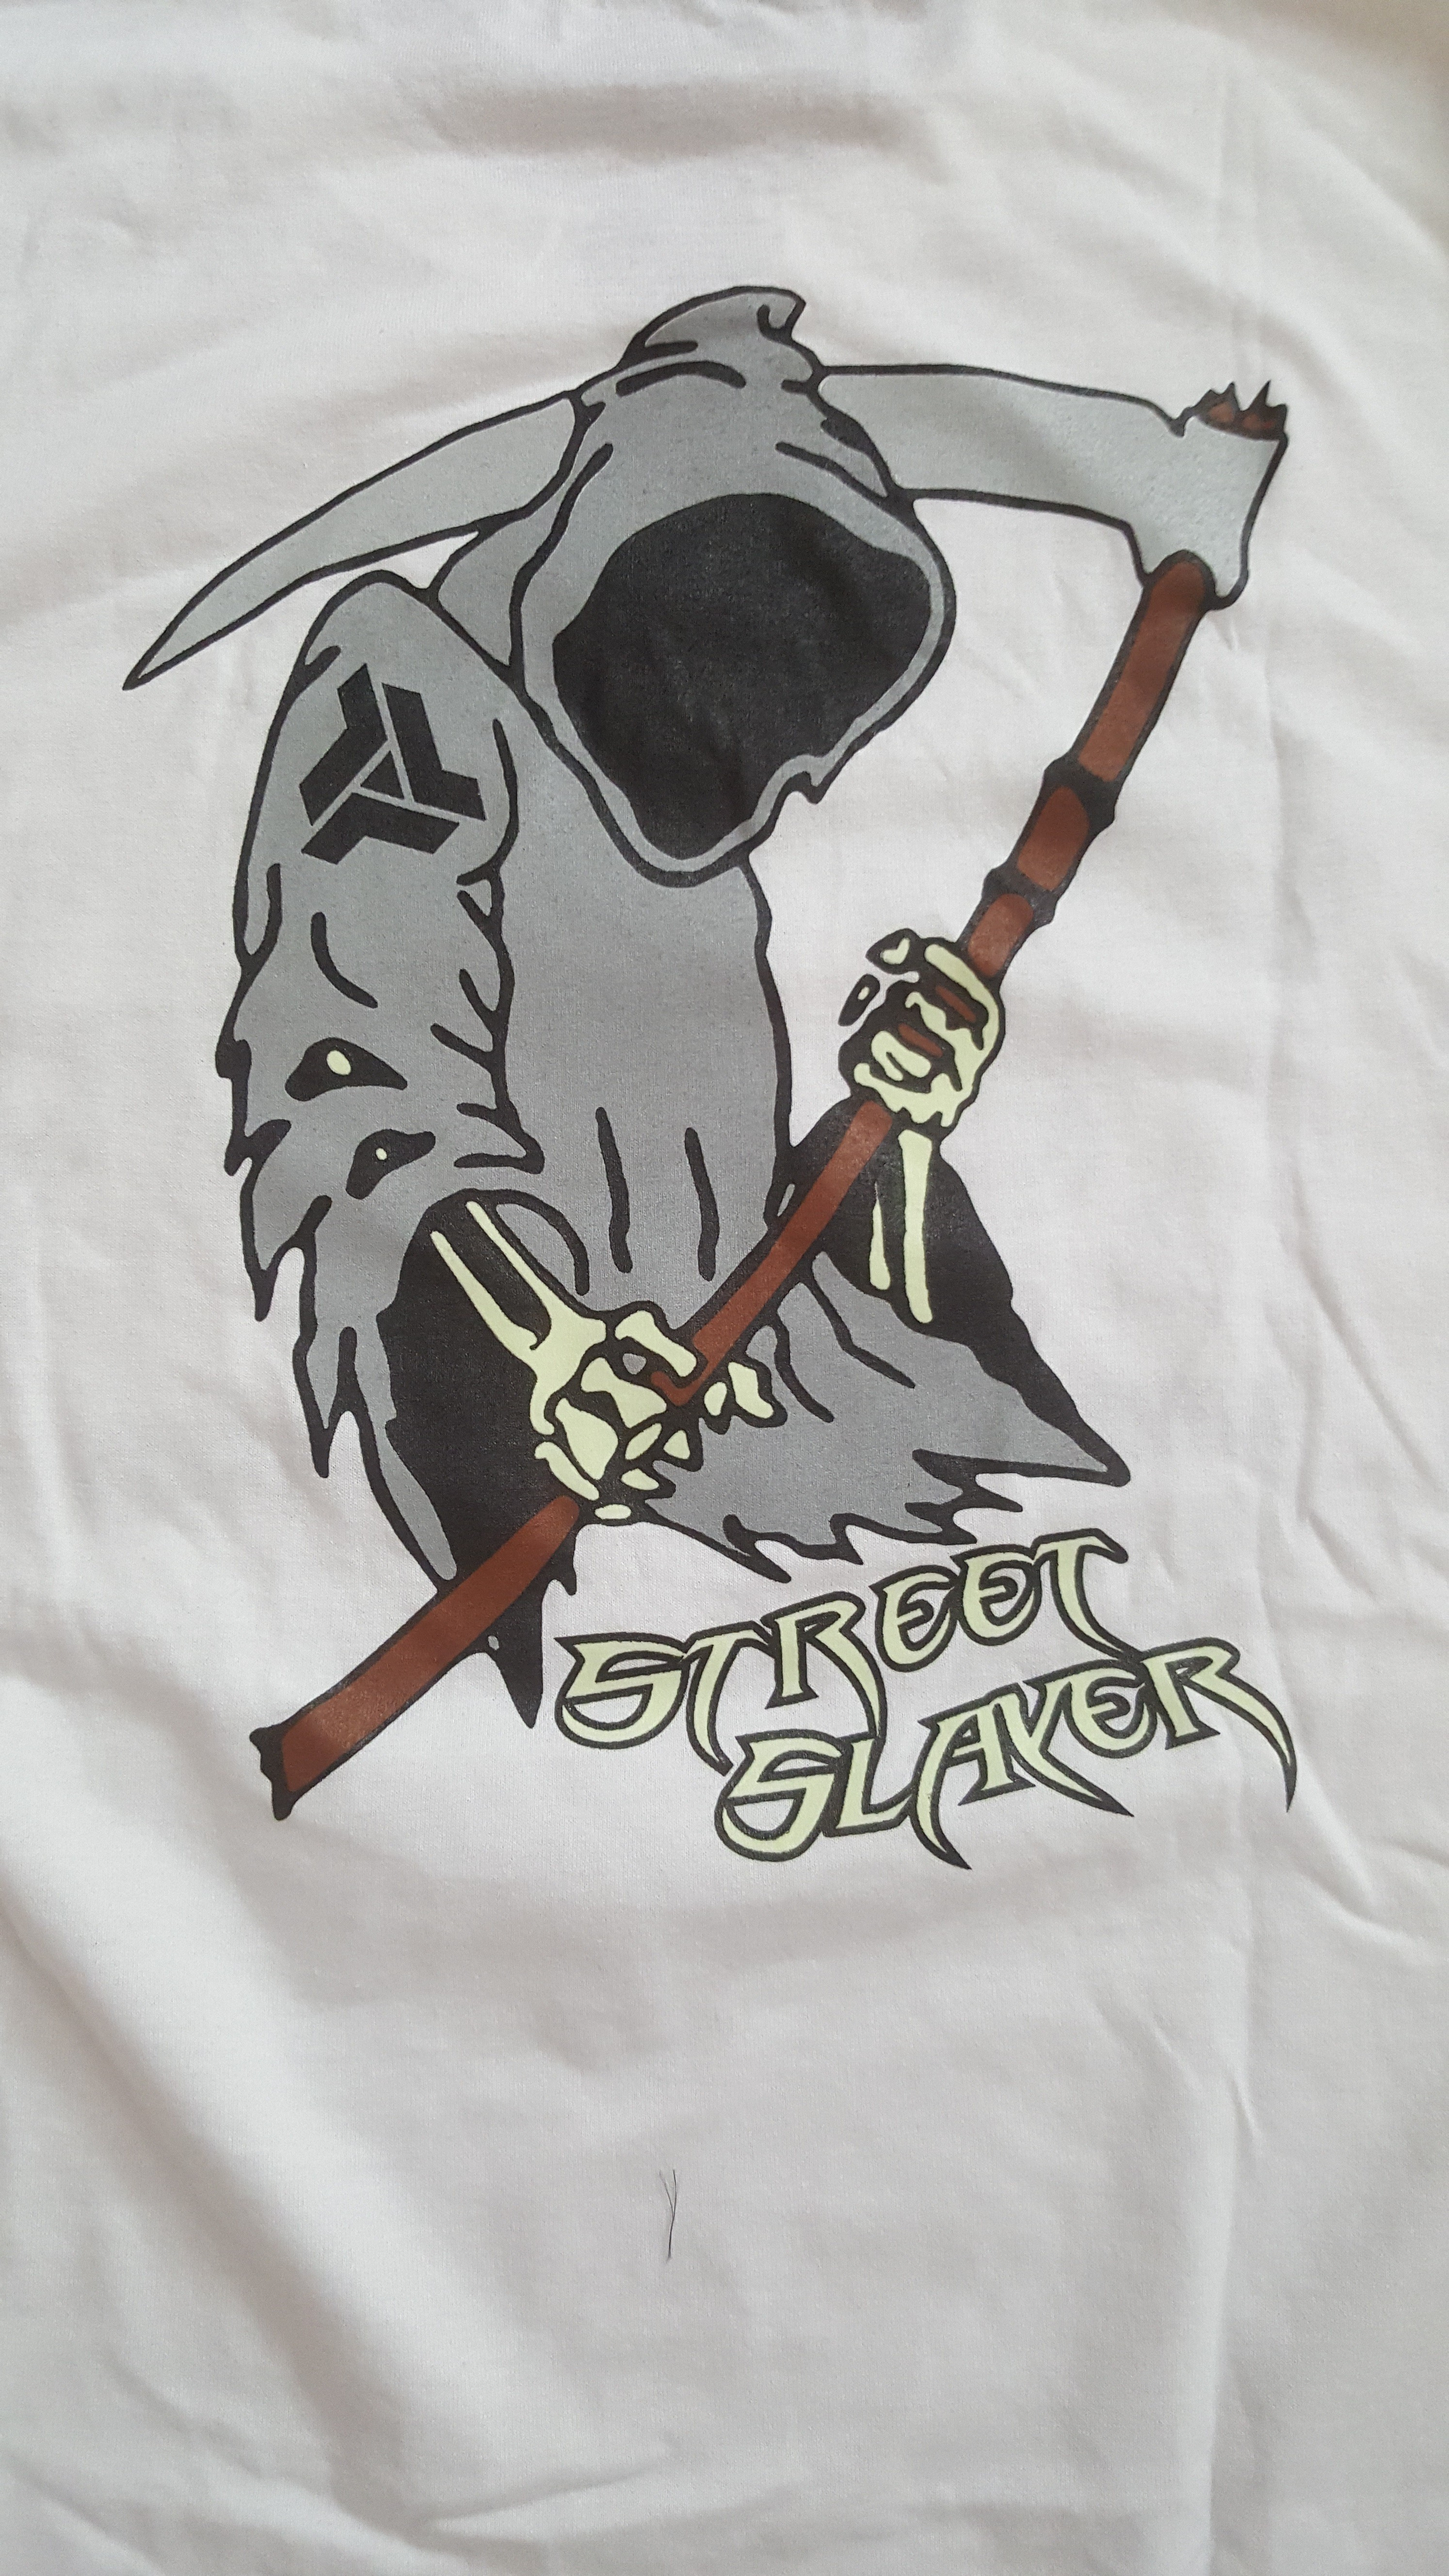 Street Slayer T-Shirts